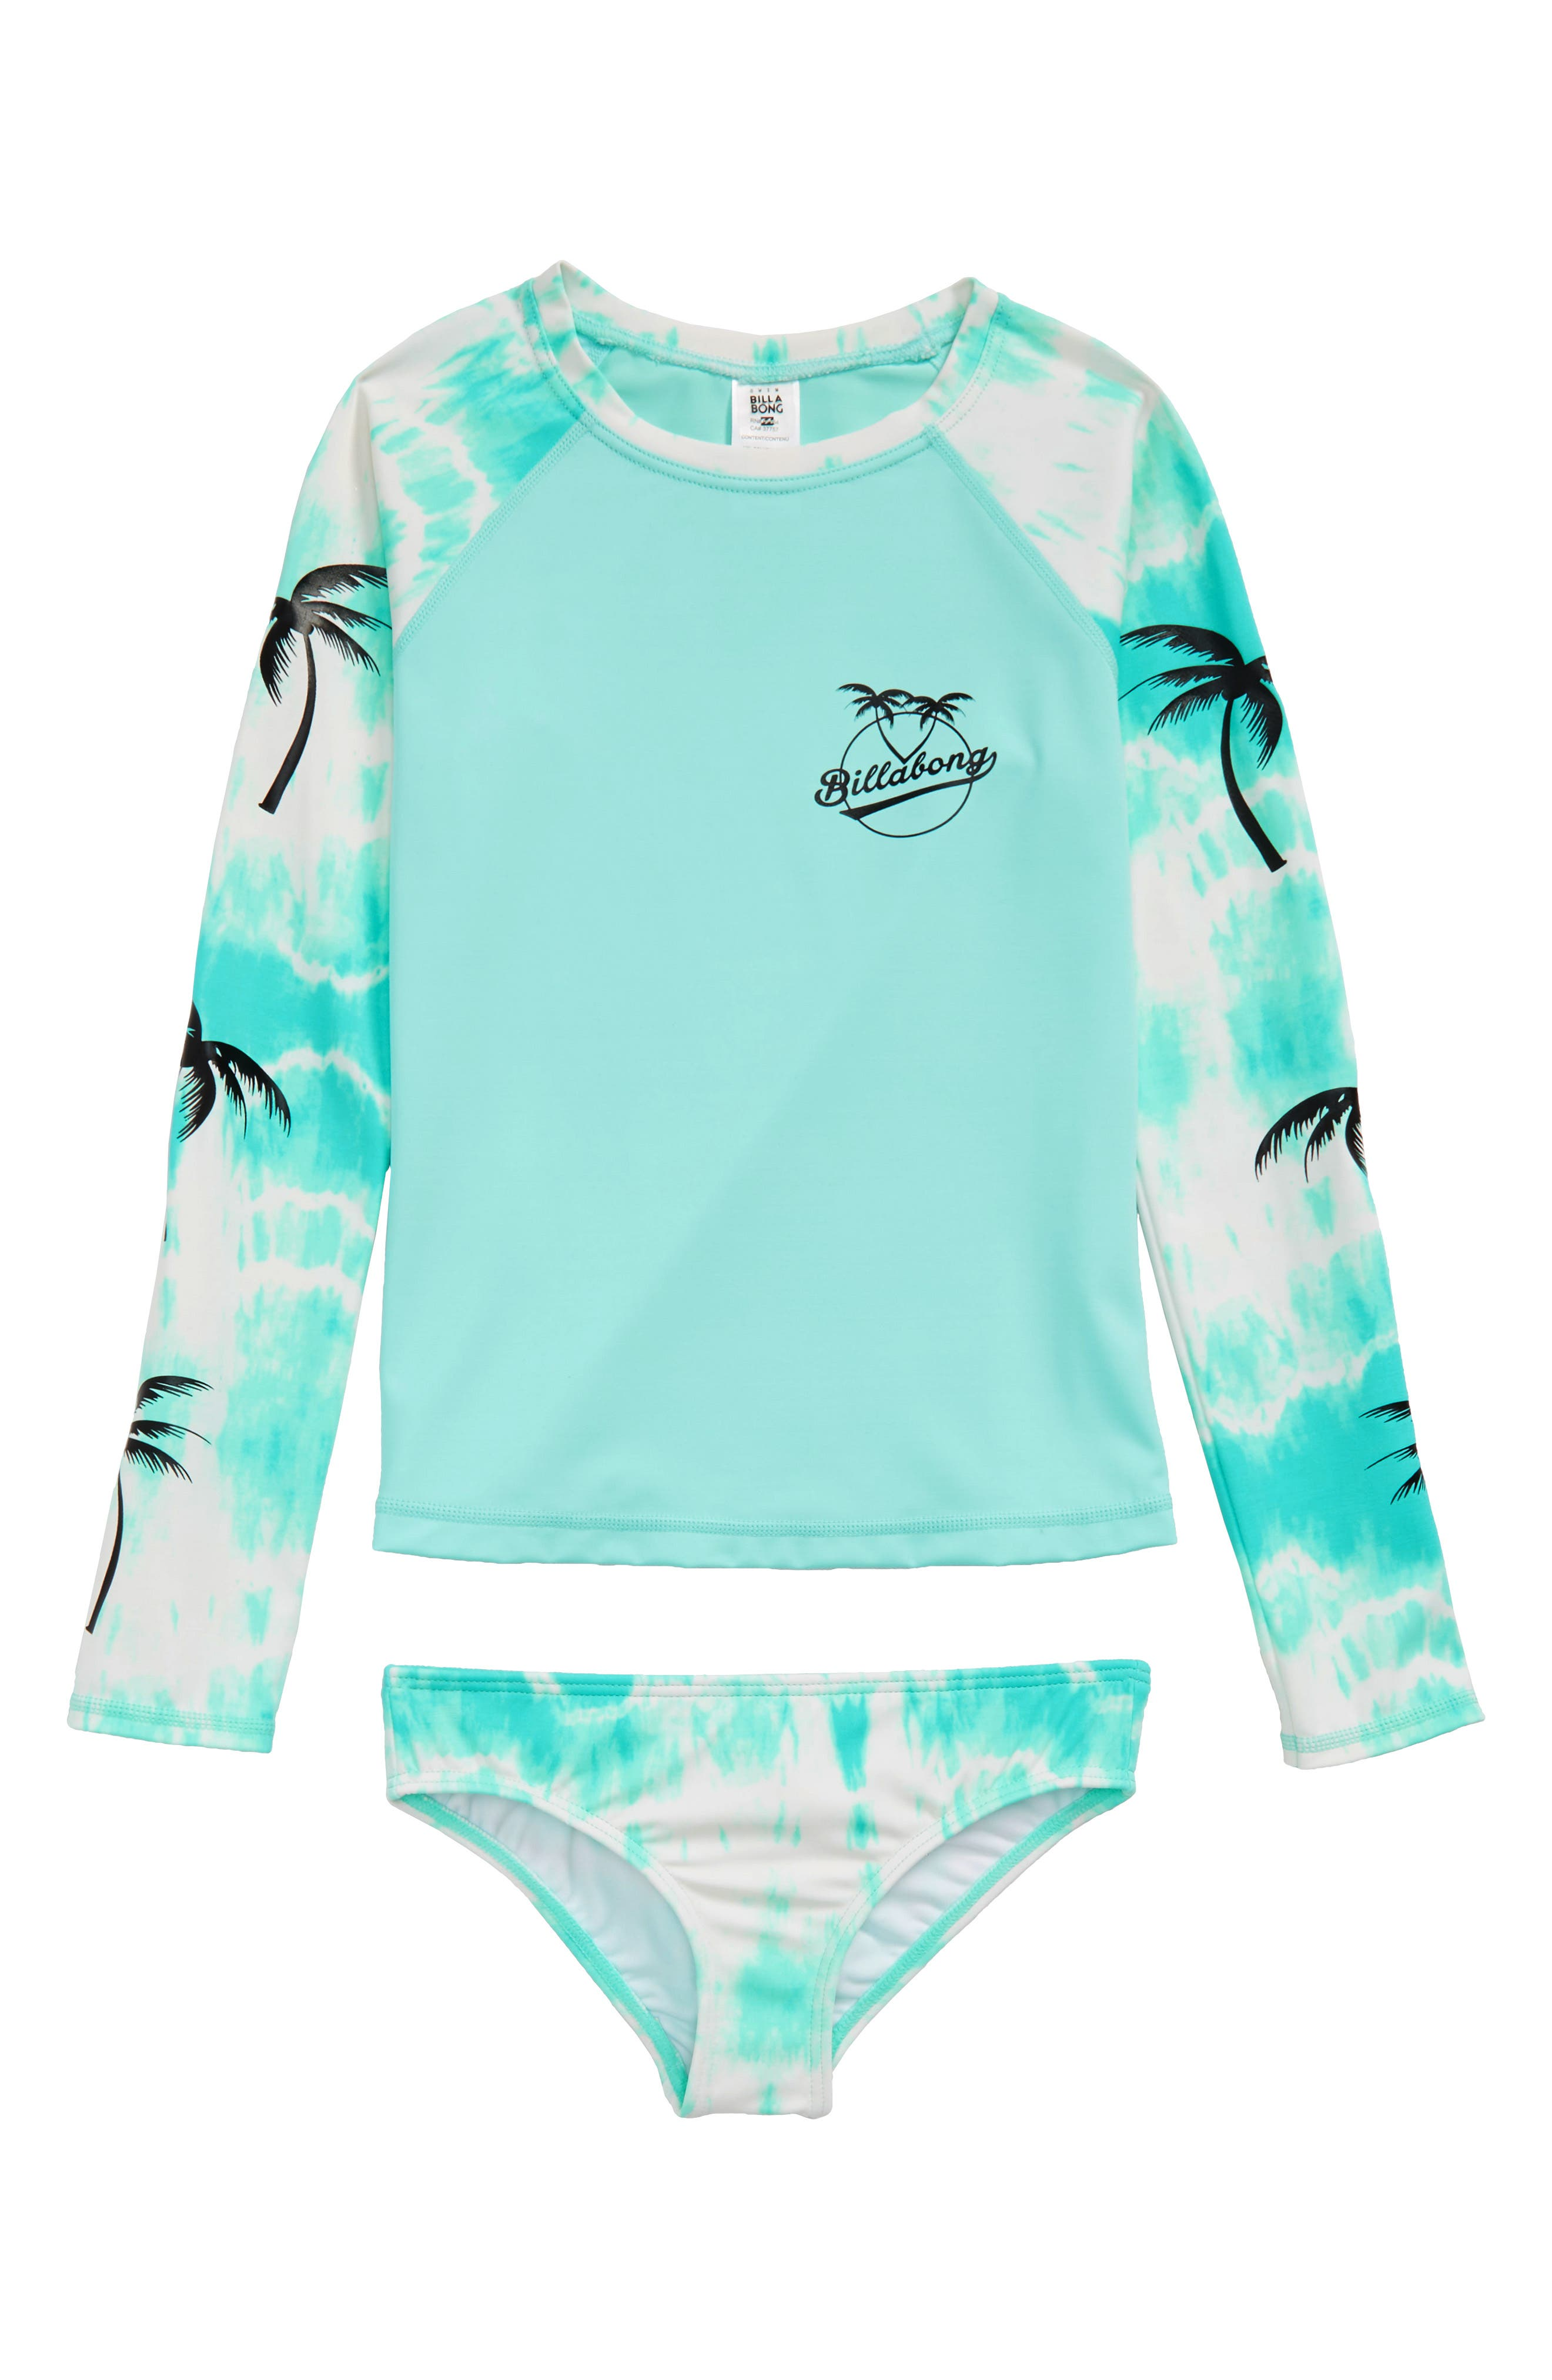 Peace 4 You Two-Piece Rashguard Swimsuit,                             Main thumbnail 1, color,                             414